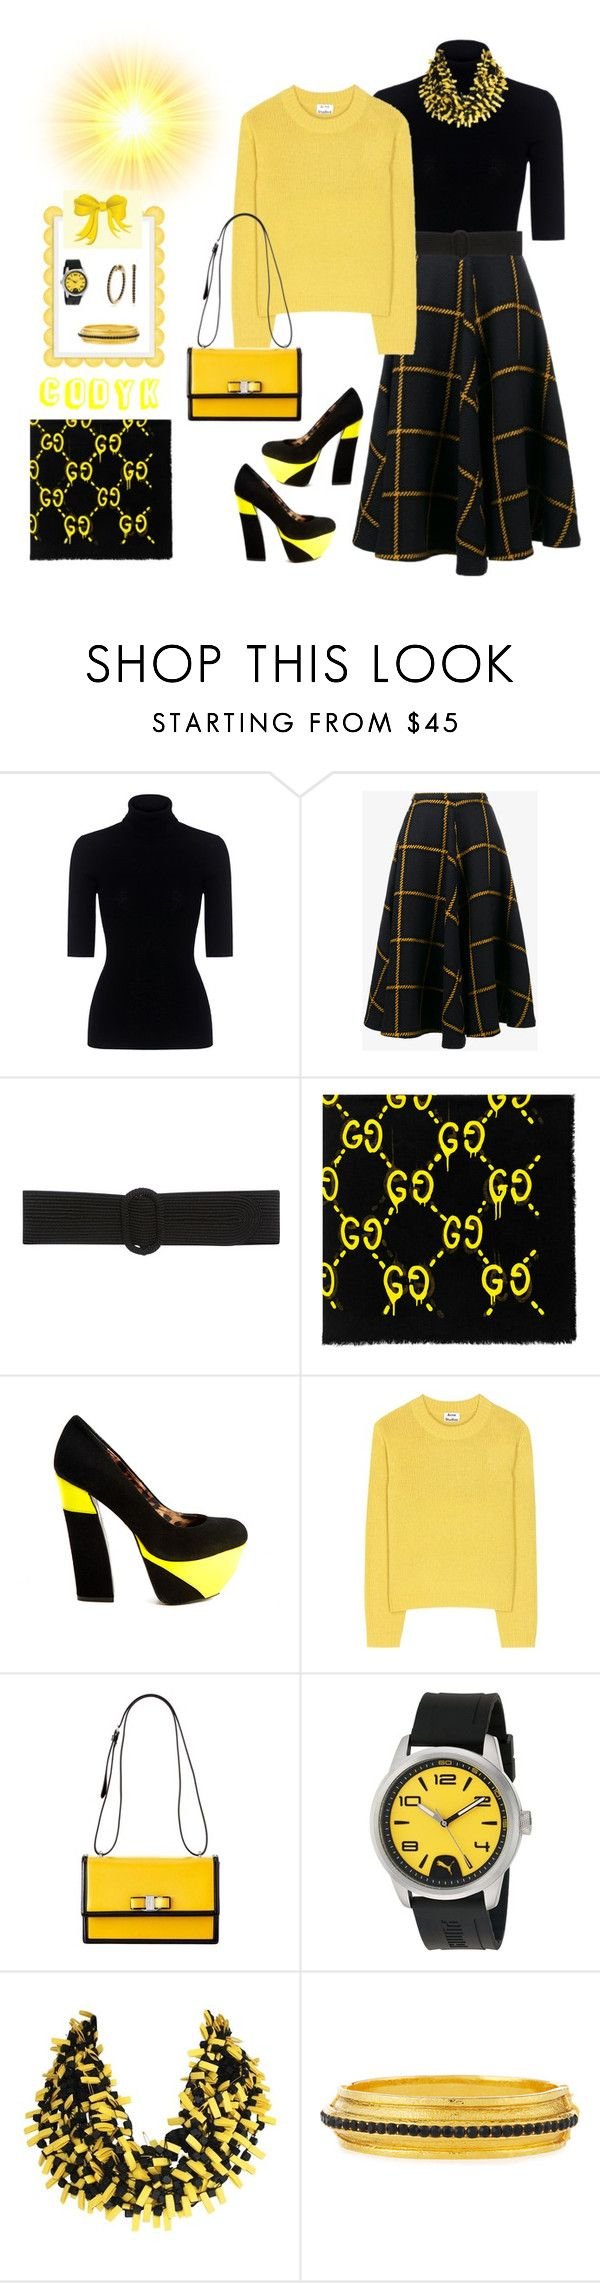 """Black & Yellow"" by cody-k ❤ liked on Polyvore featuring Theory, JOUR/NÉ, Oscar de la Renta, Gucci, Betsey Johnson, Acne Studios, Salvatore Ferragamo, Puma and Jose & Maria Barrera"